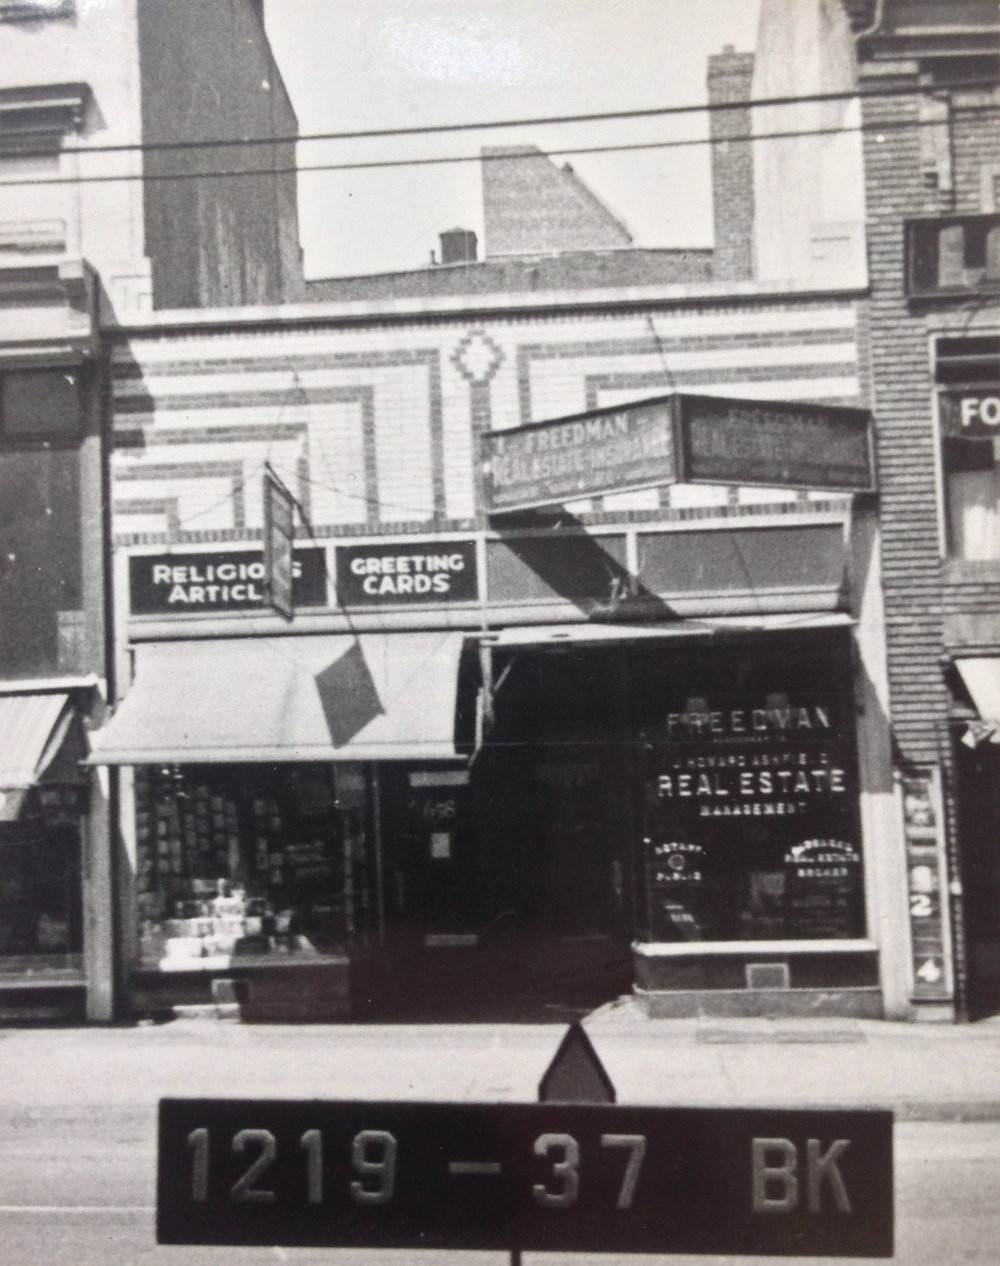 658 Nostrand Ave., early 1940s. Photo: Department of Finance collection, NYC Municipal Archives.